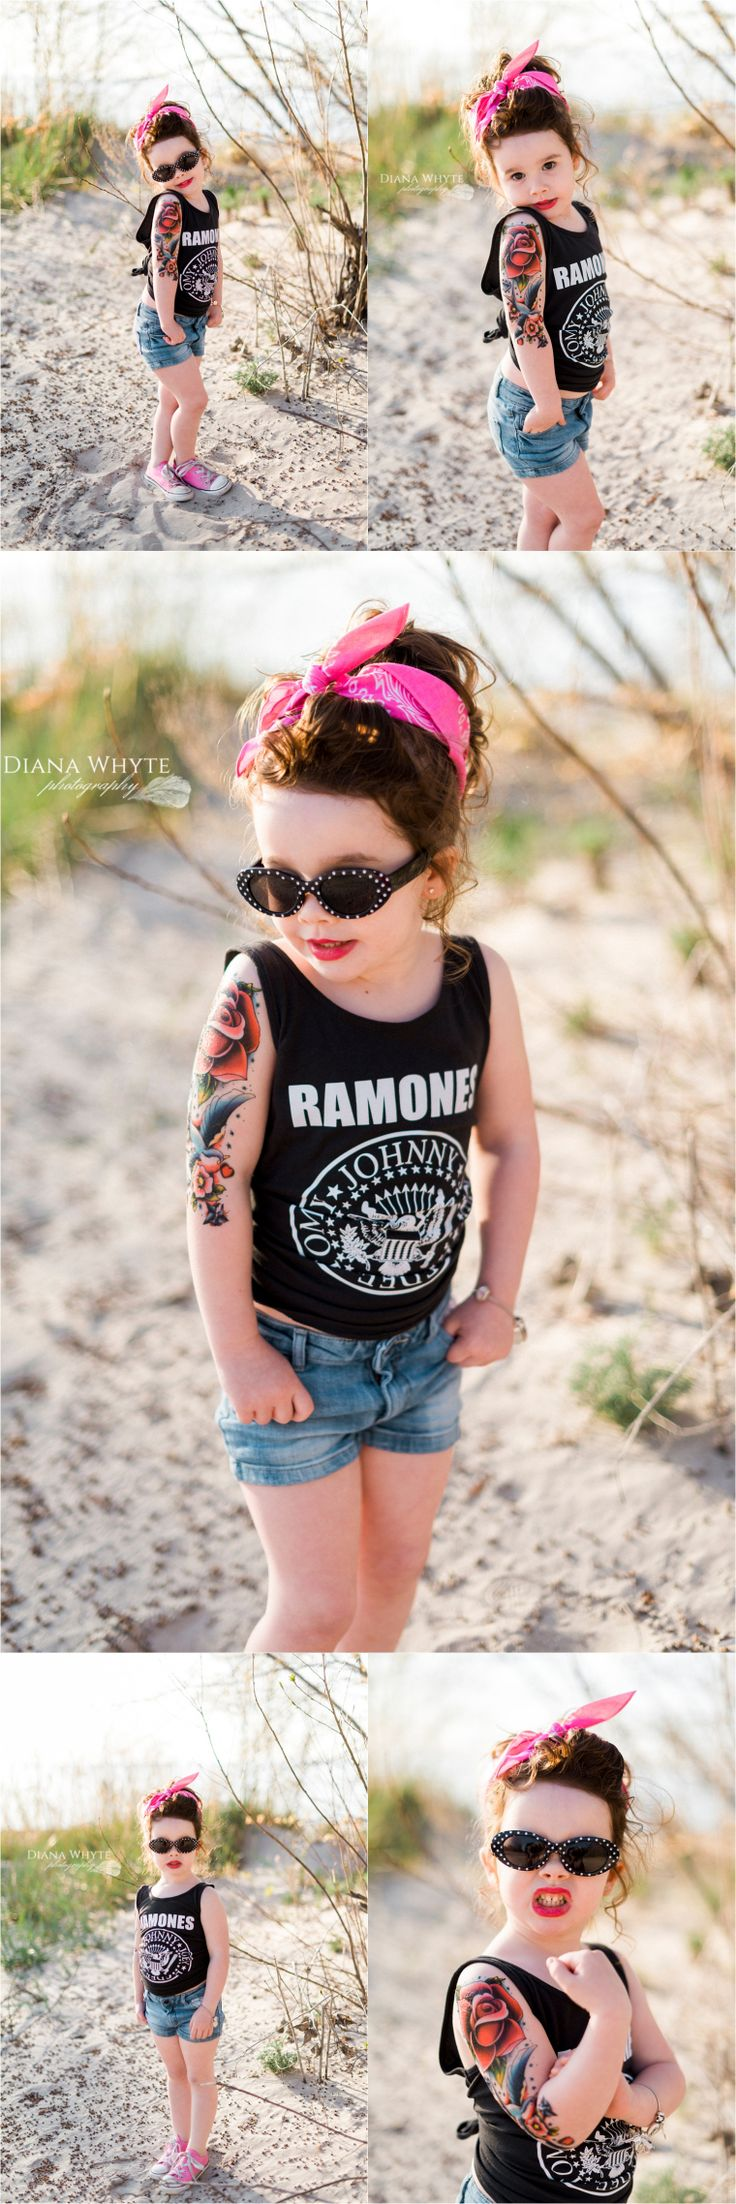 Rockabilly tattoo birthday party girl www.DianaWhytePhotography.com